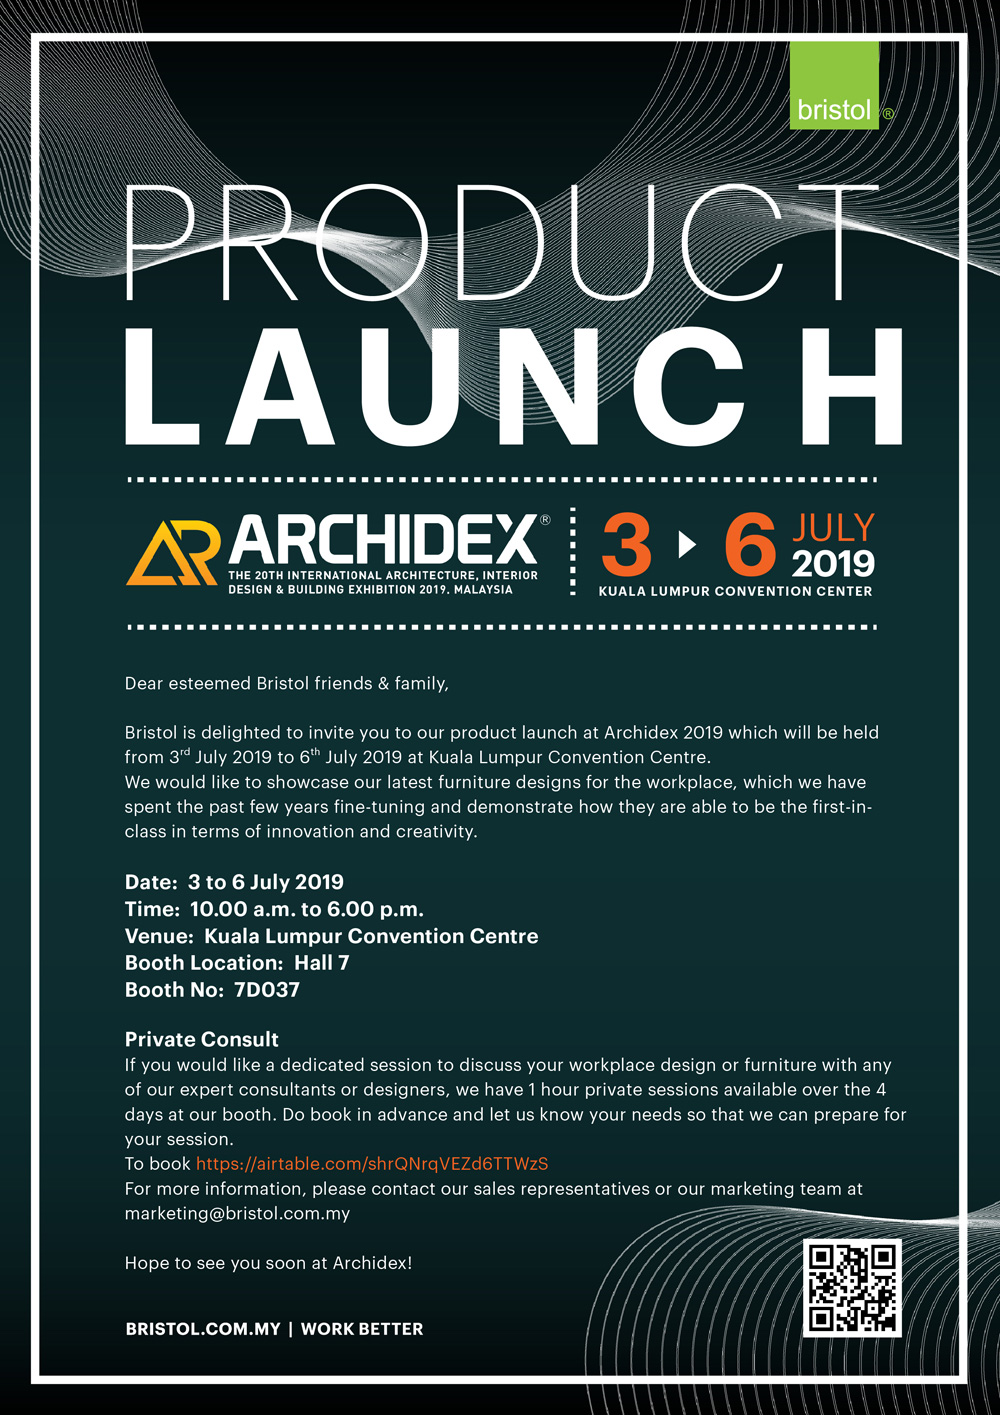 Archidex-Product-Launch-Public-invi-FA-(2).jpg